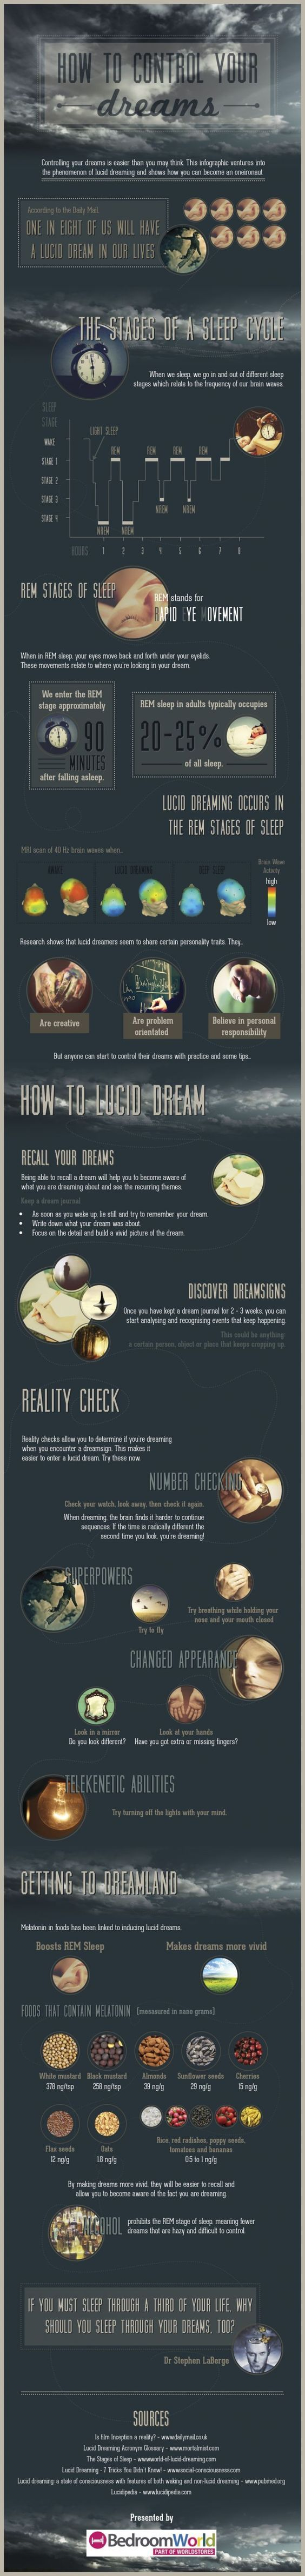 How to control your dreams. Learned about this back in the fourth grade at Harry Potter camp, but completely forgot.